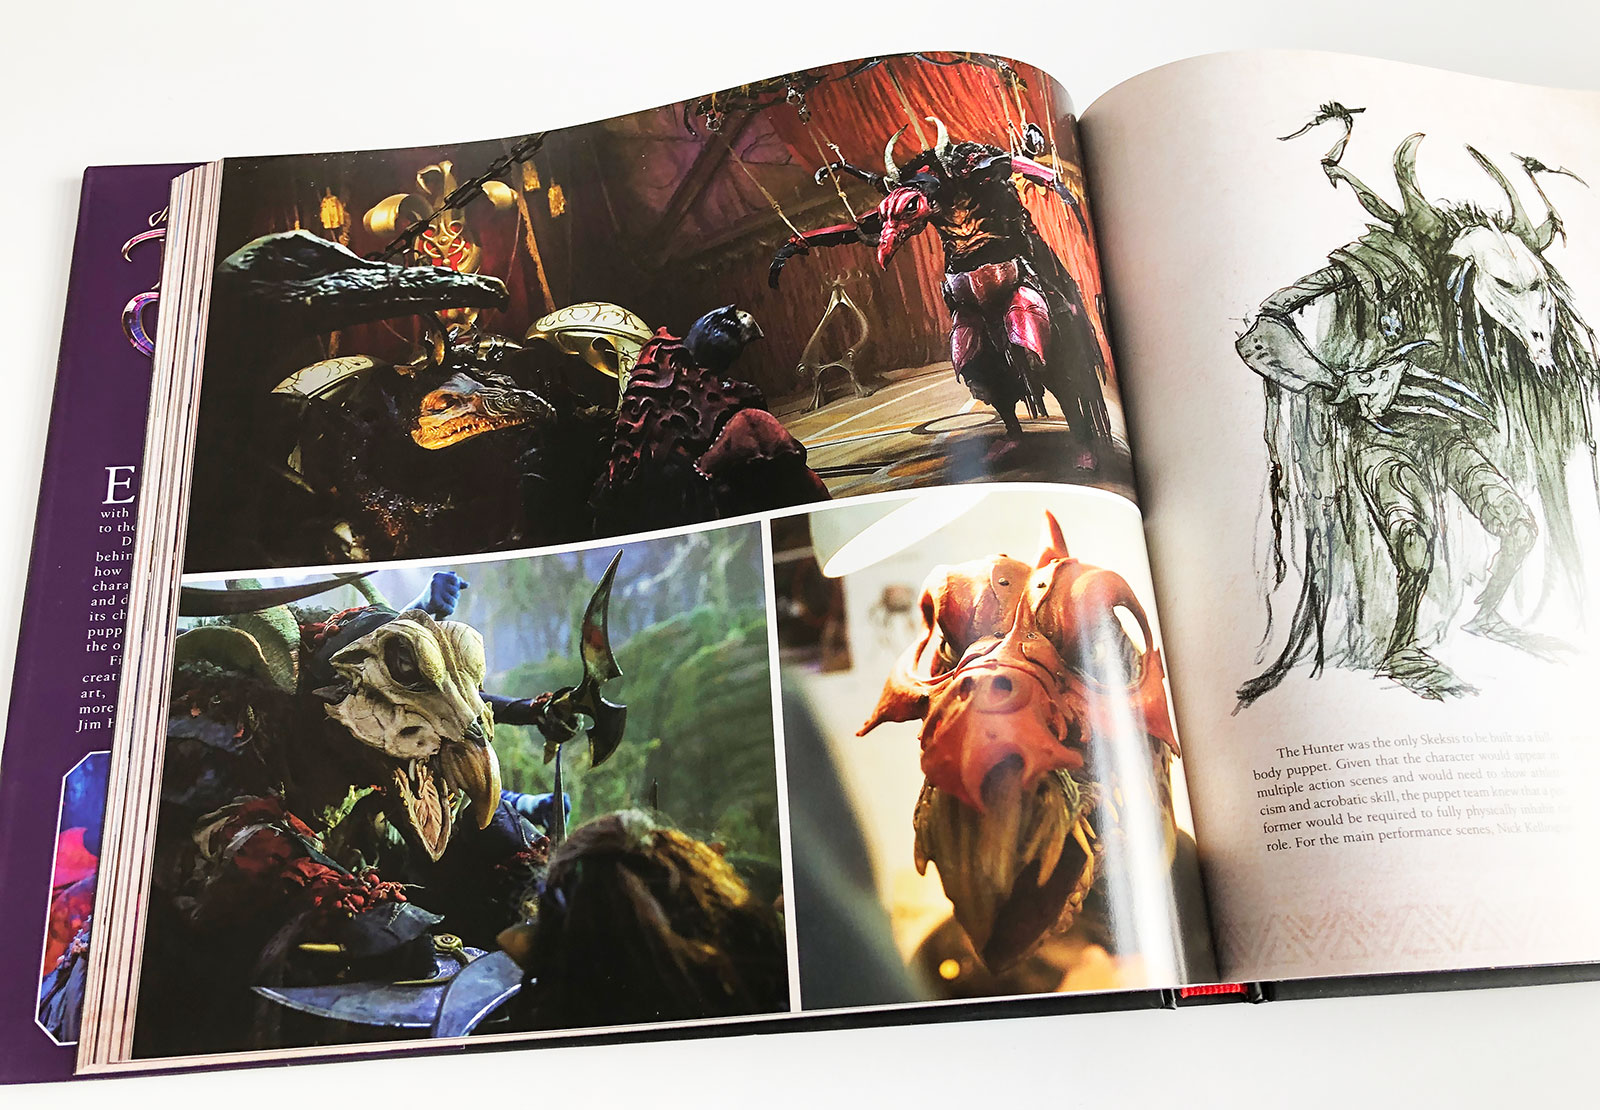 The Art of The Dark Crystal: Age of Resistance Book Review